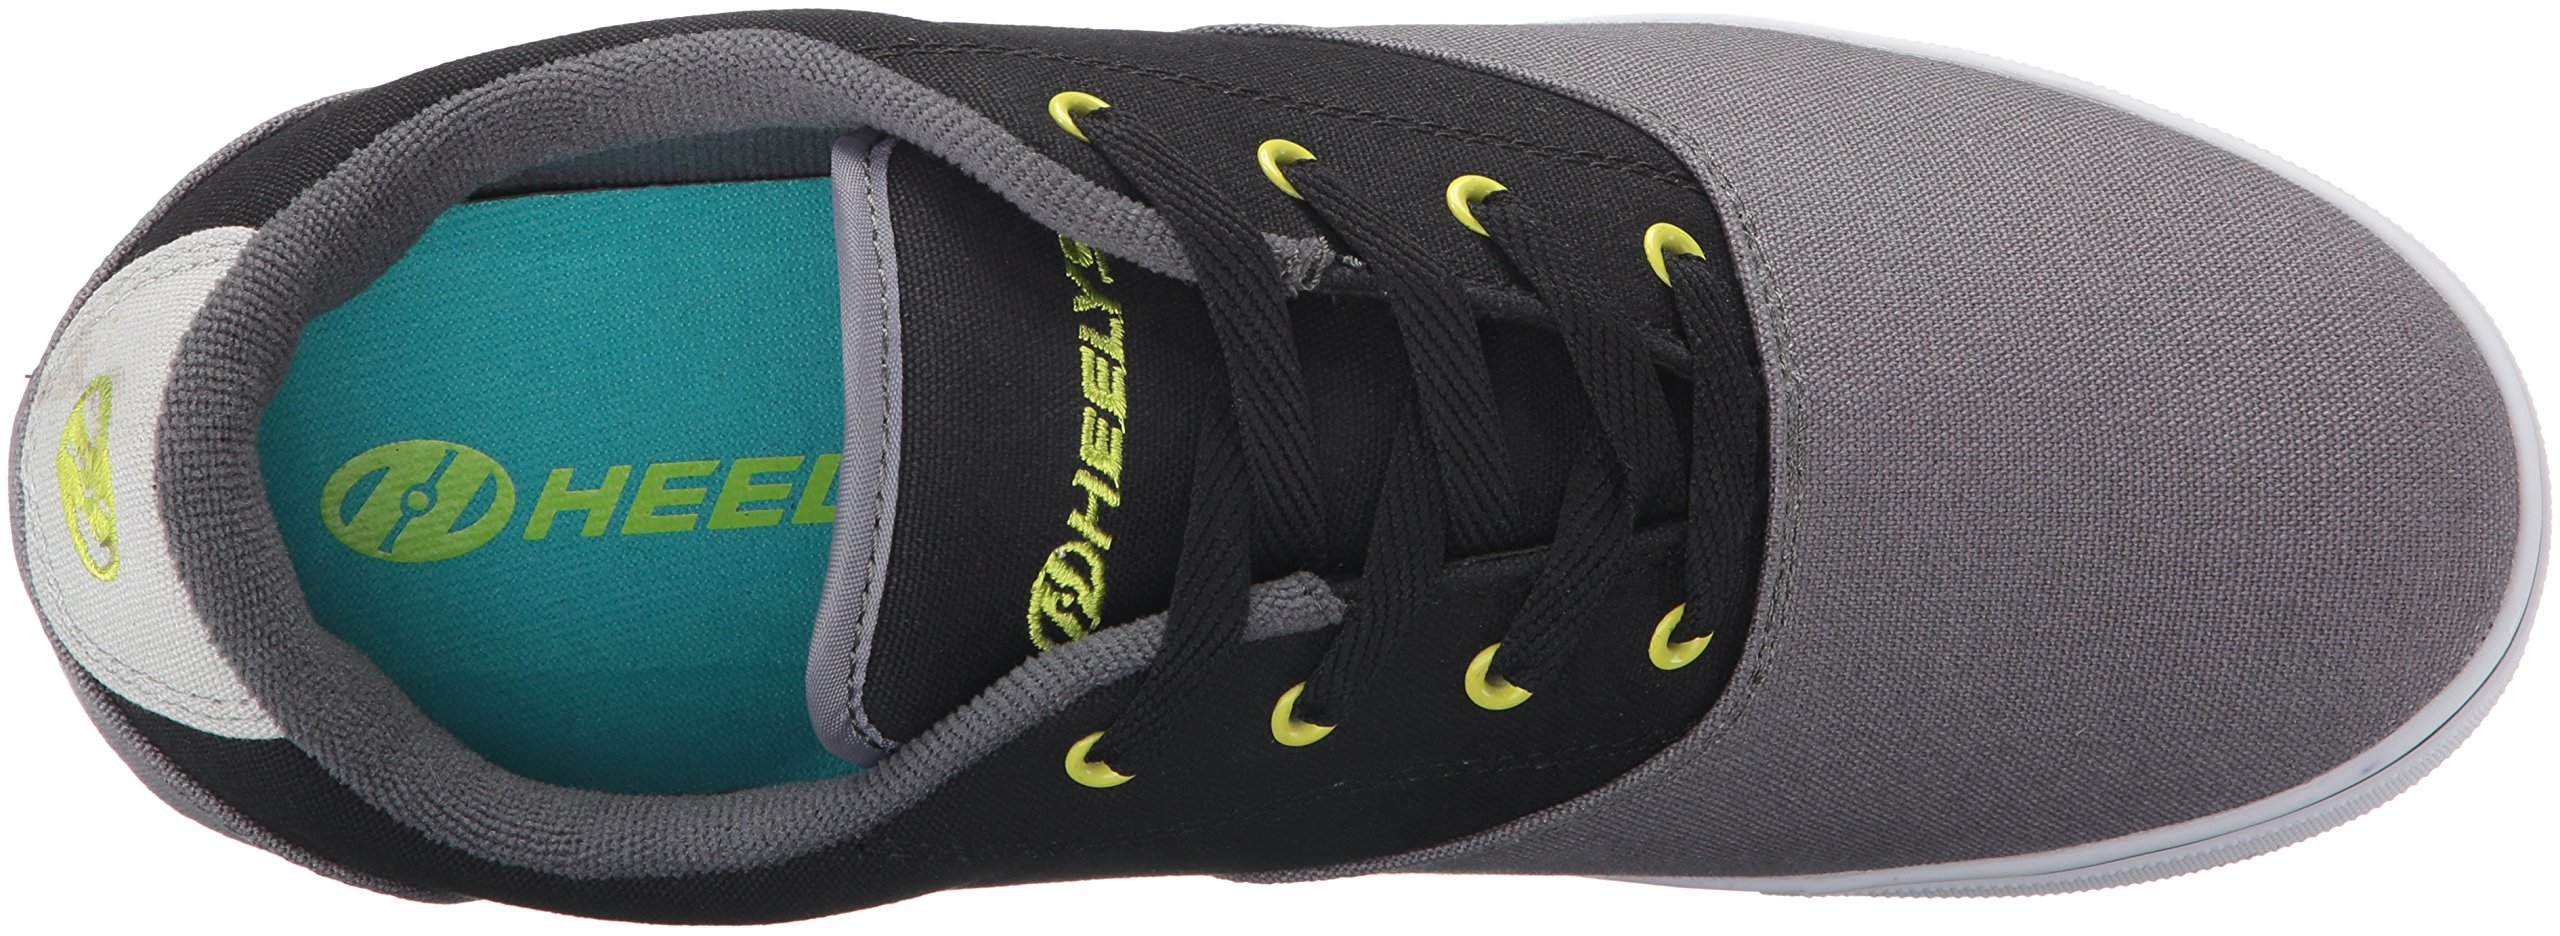 Heelys Men's Launch Fashion Sneaker Charcoal/Black/Lime 10 M US by Heelys (Image #8)